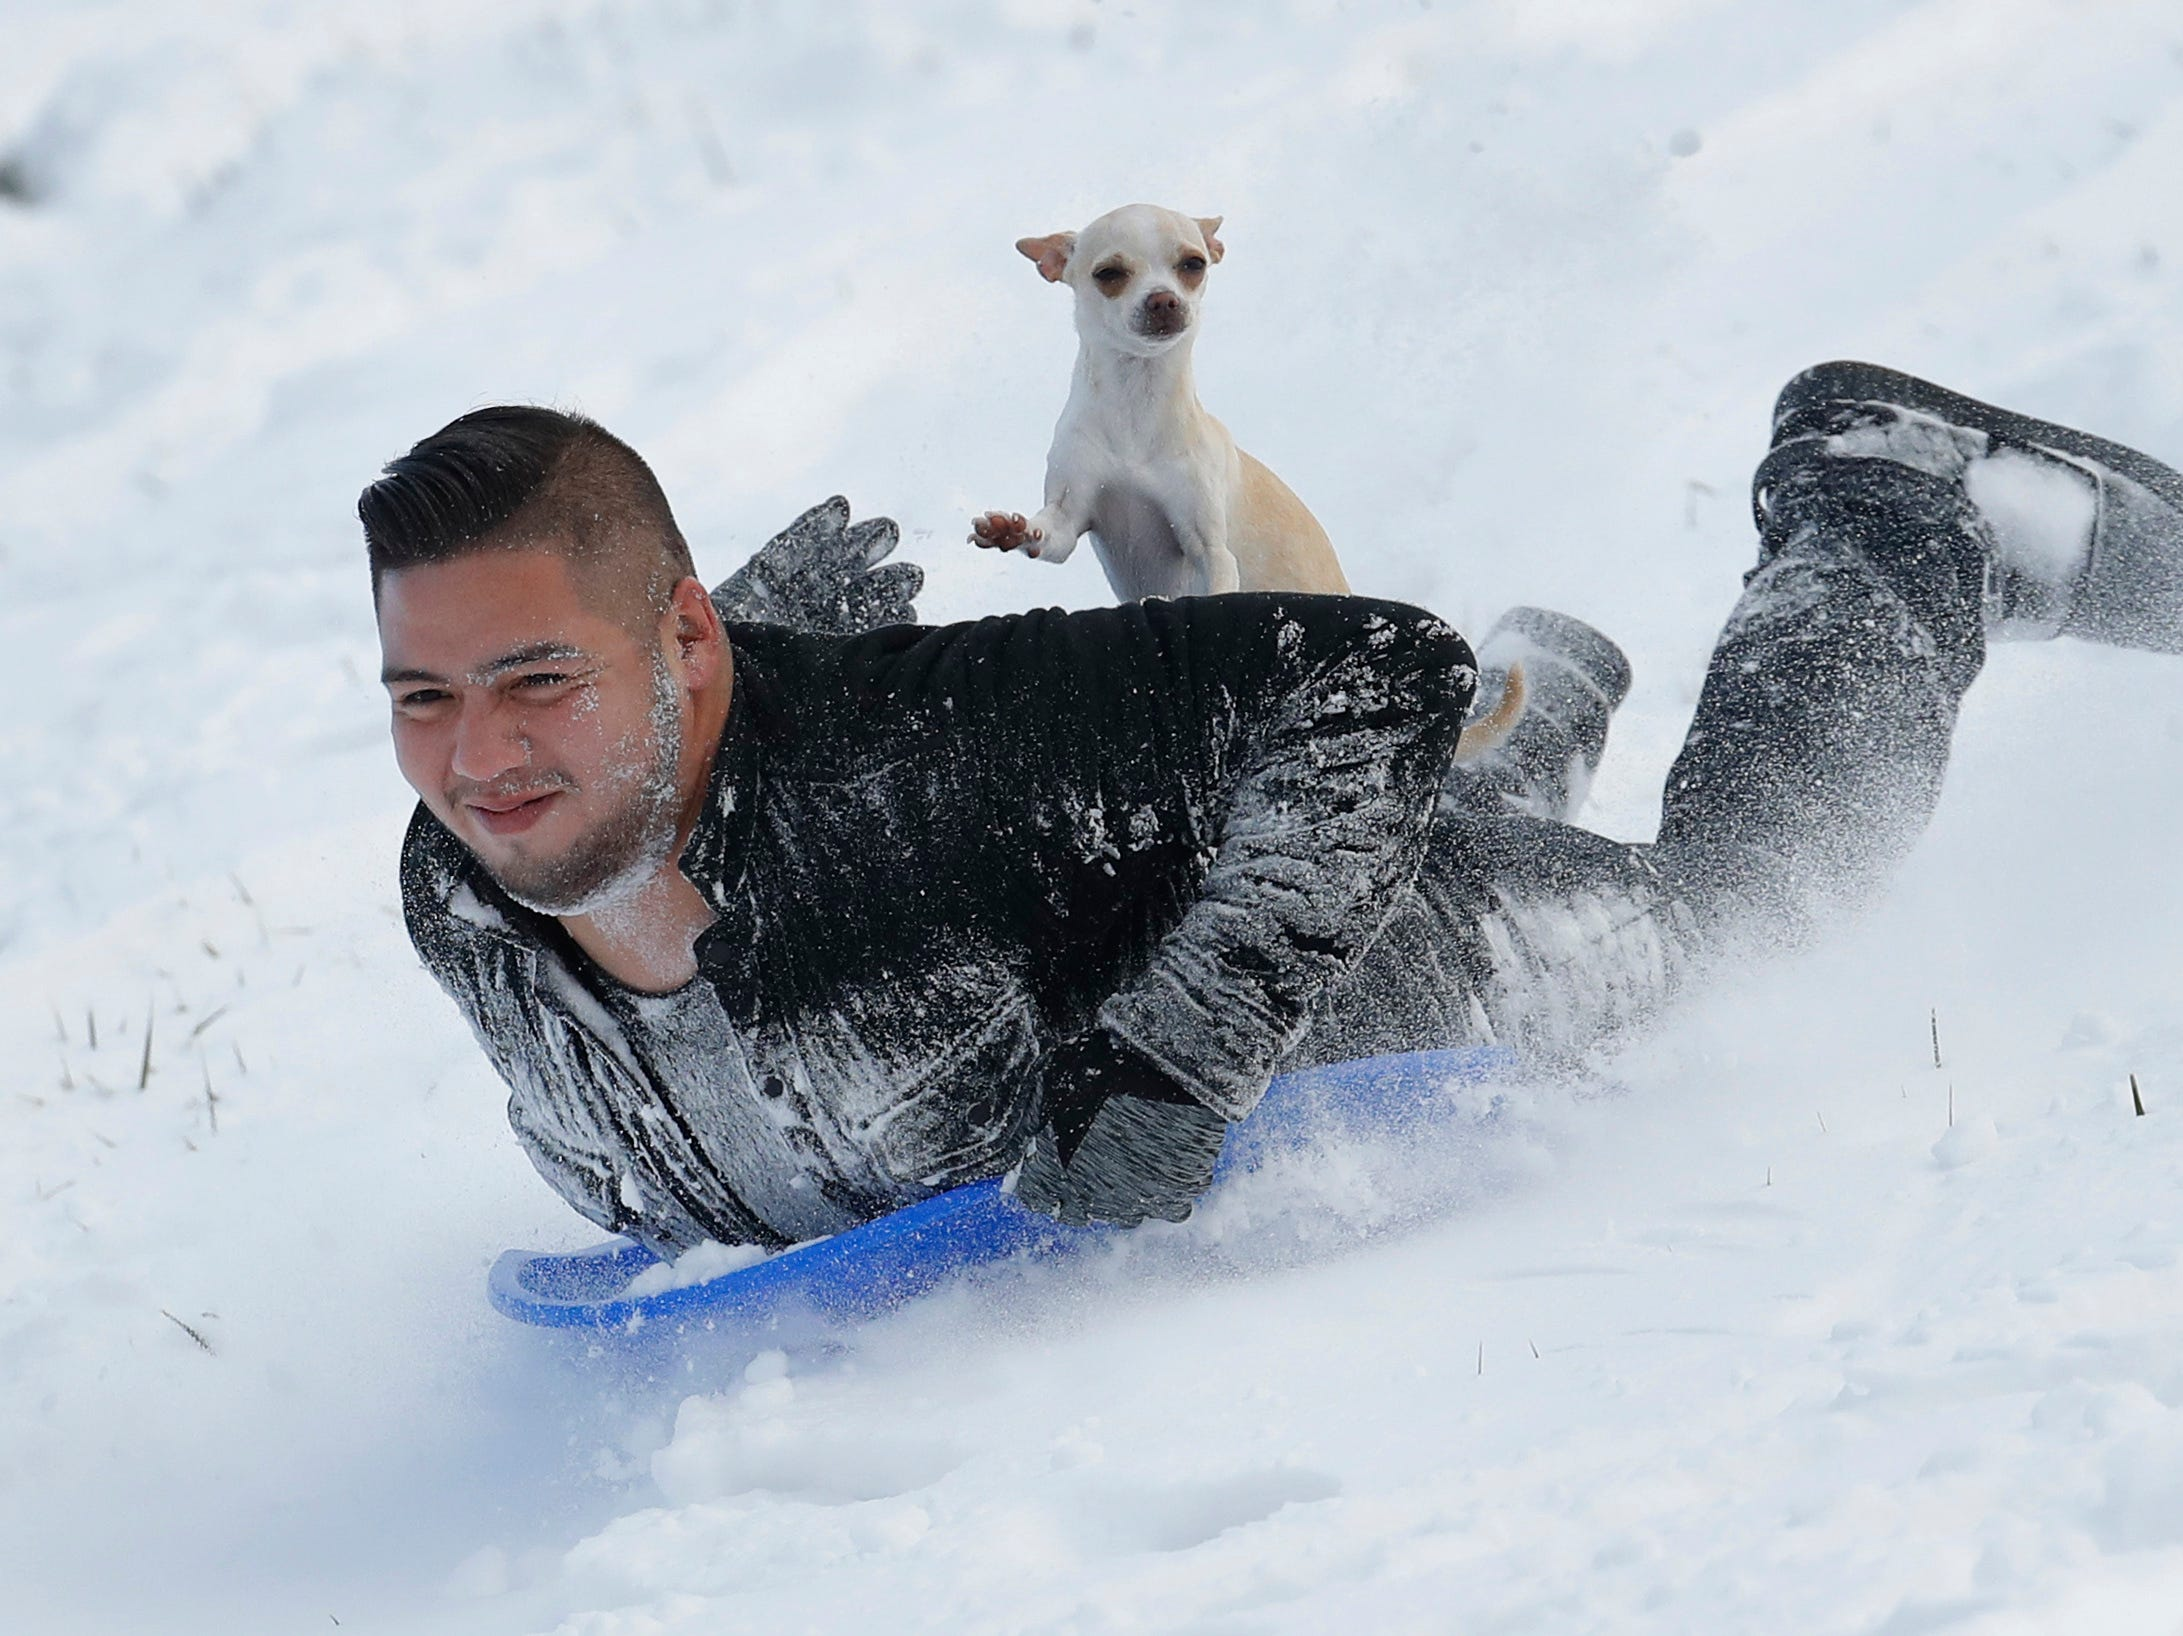 Jonny Mendoza and his dog Subi sled down a snowy hill in a park on Nov. 26, 2018, in Kansas City, Kan.